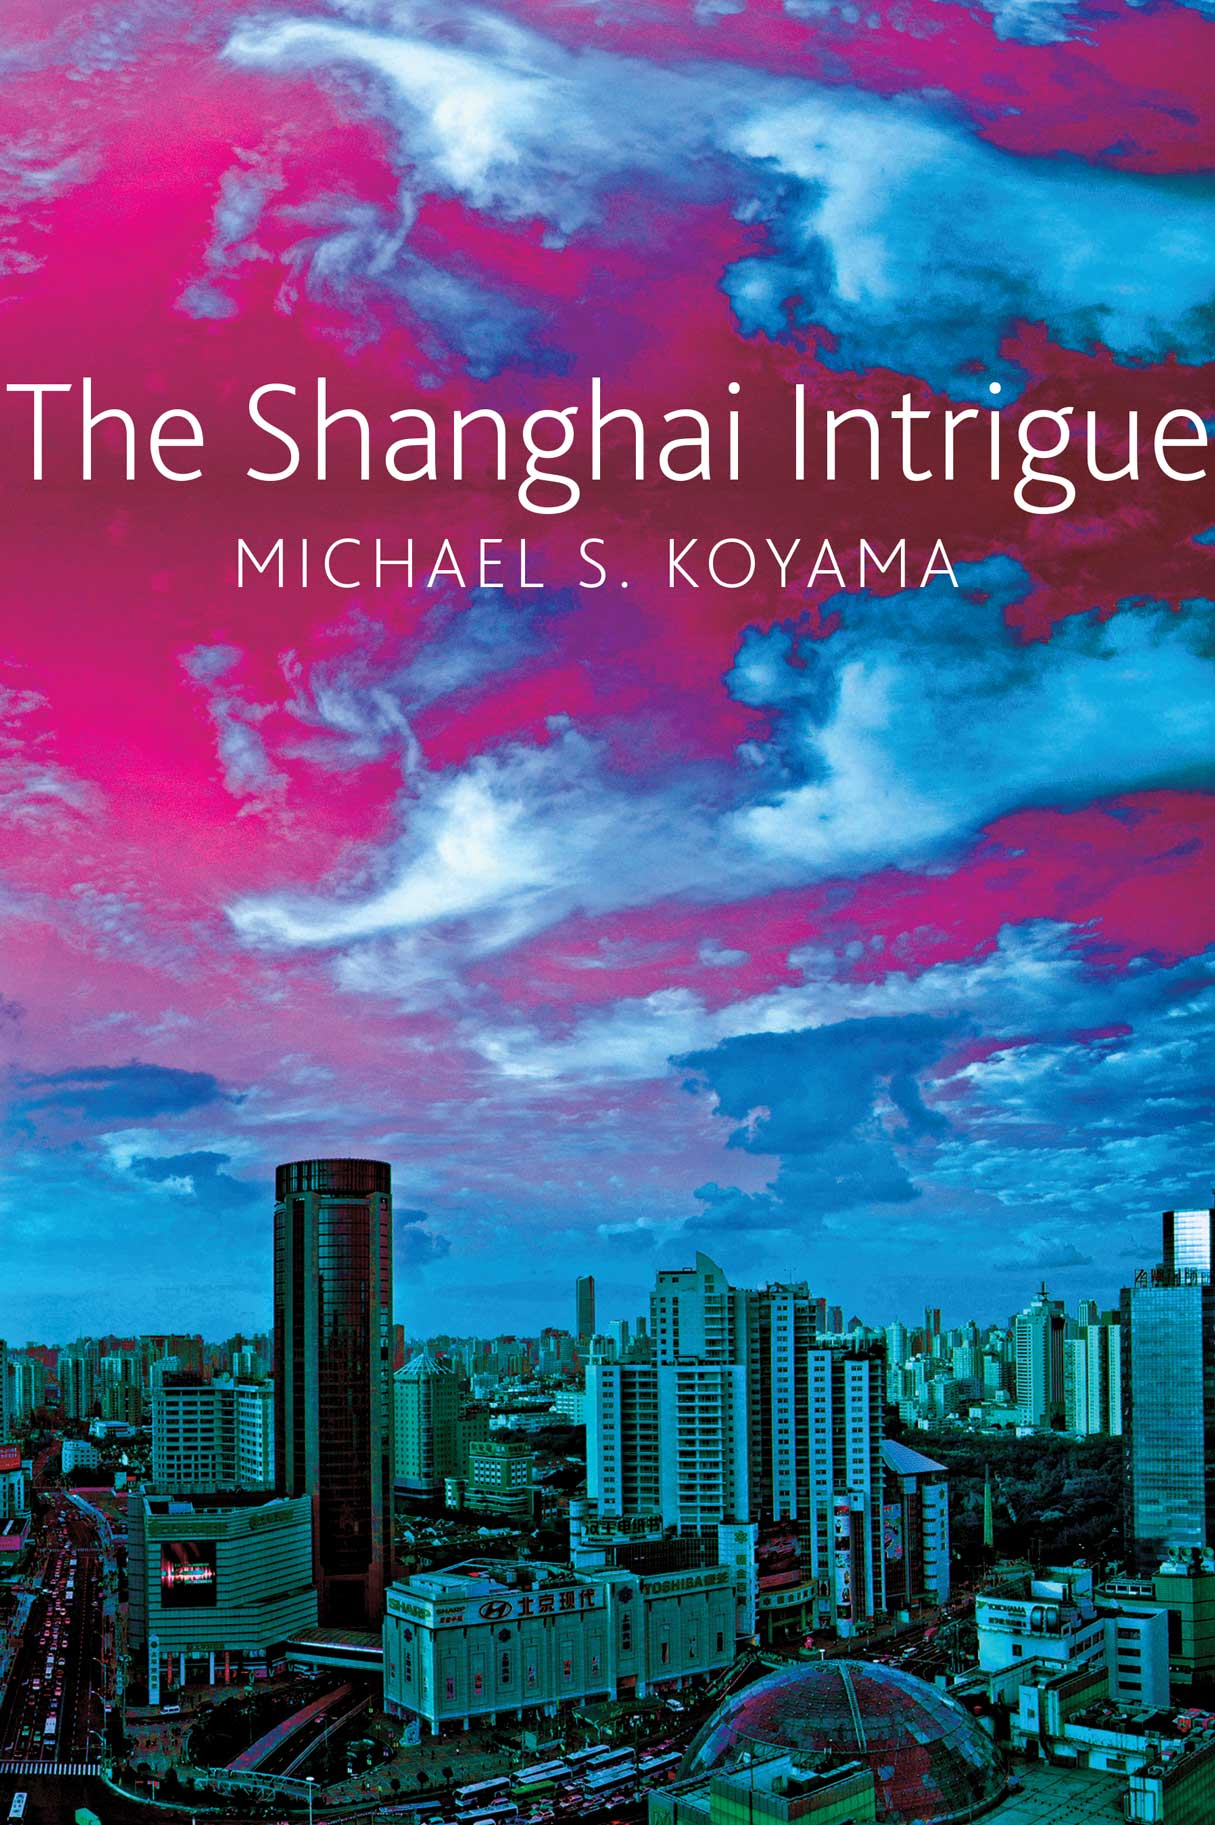 The Shanghai Intrigue by Michael S. Koyama |  Seagull Books